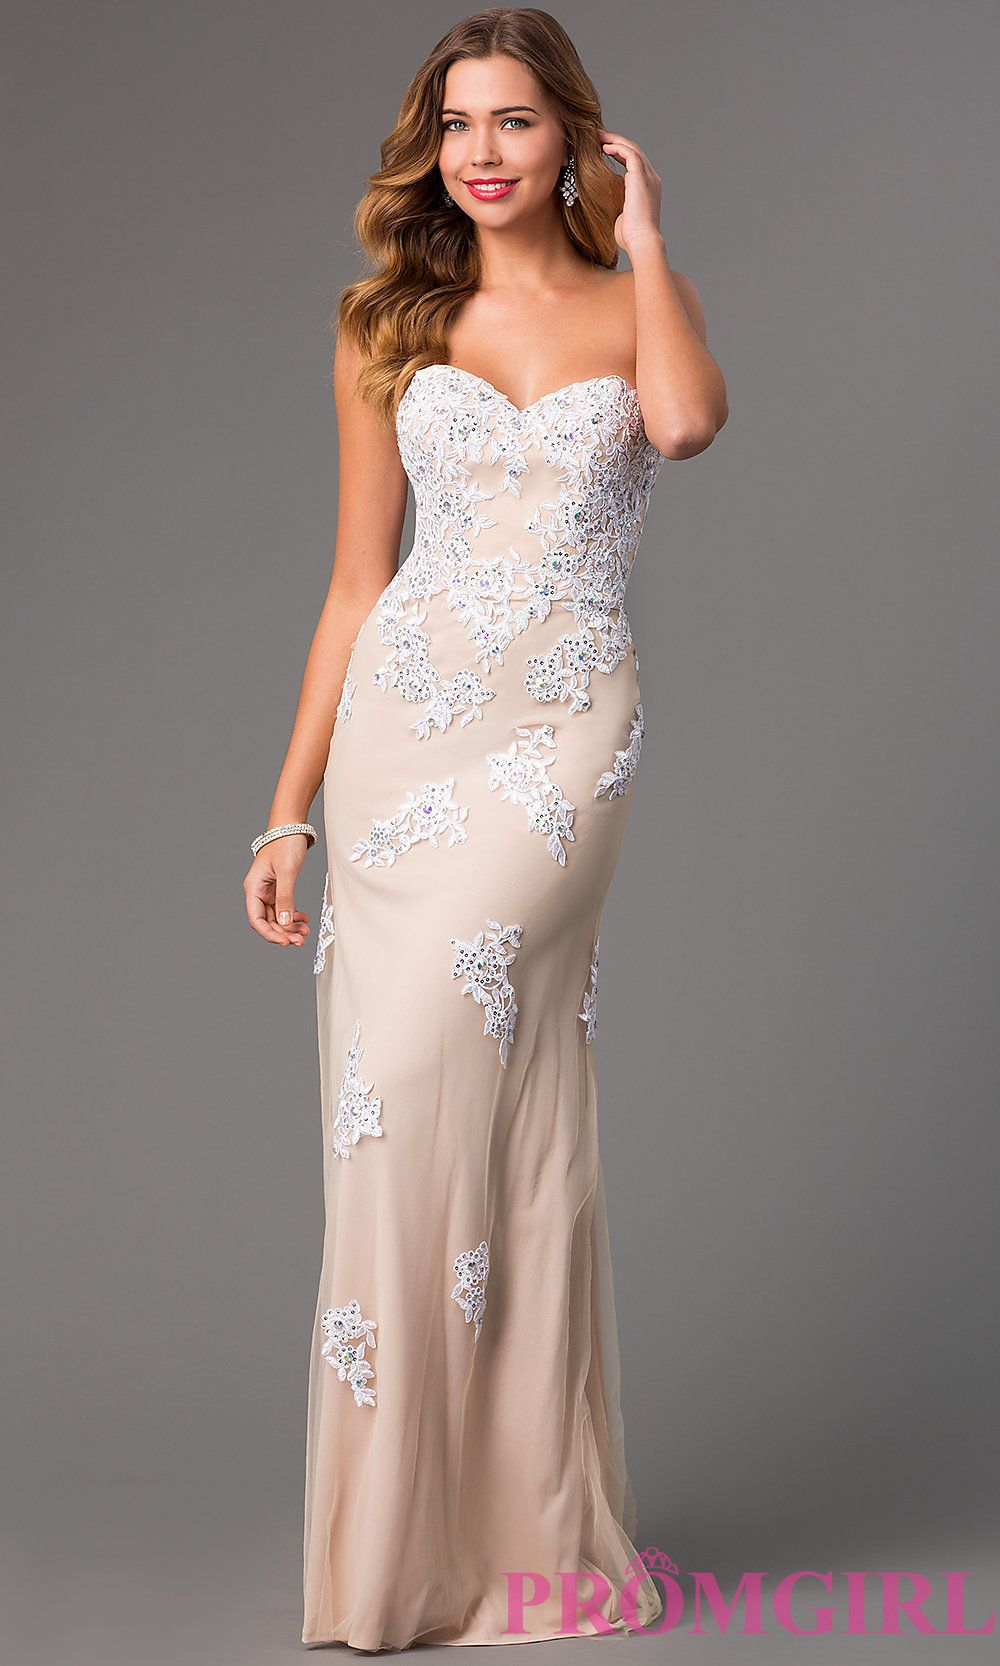 Prom dresses celebrity dresses sexy evening gowns strapless